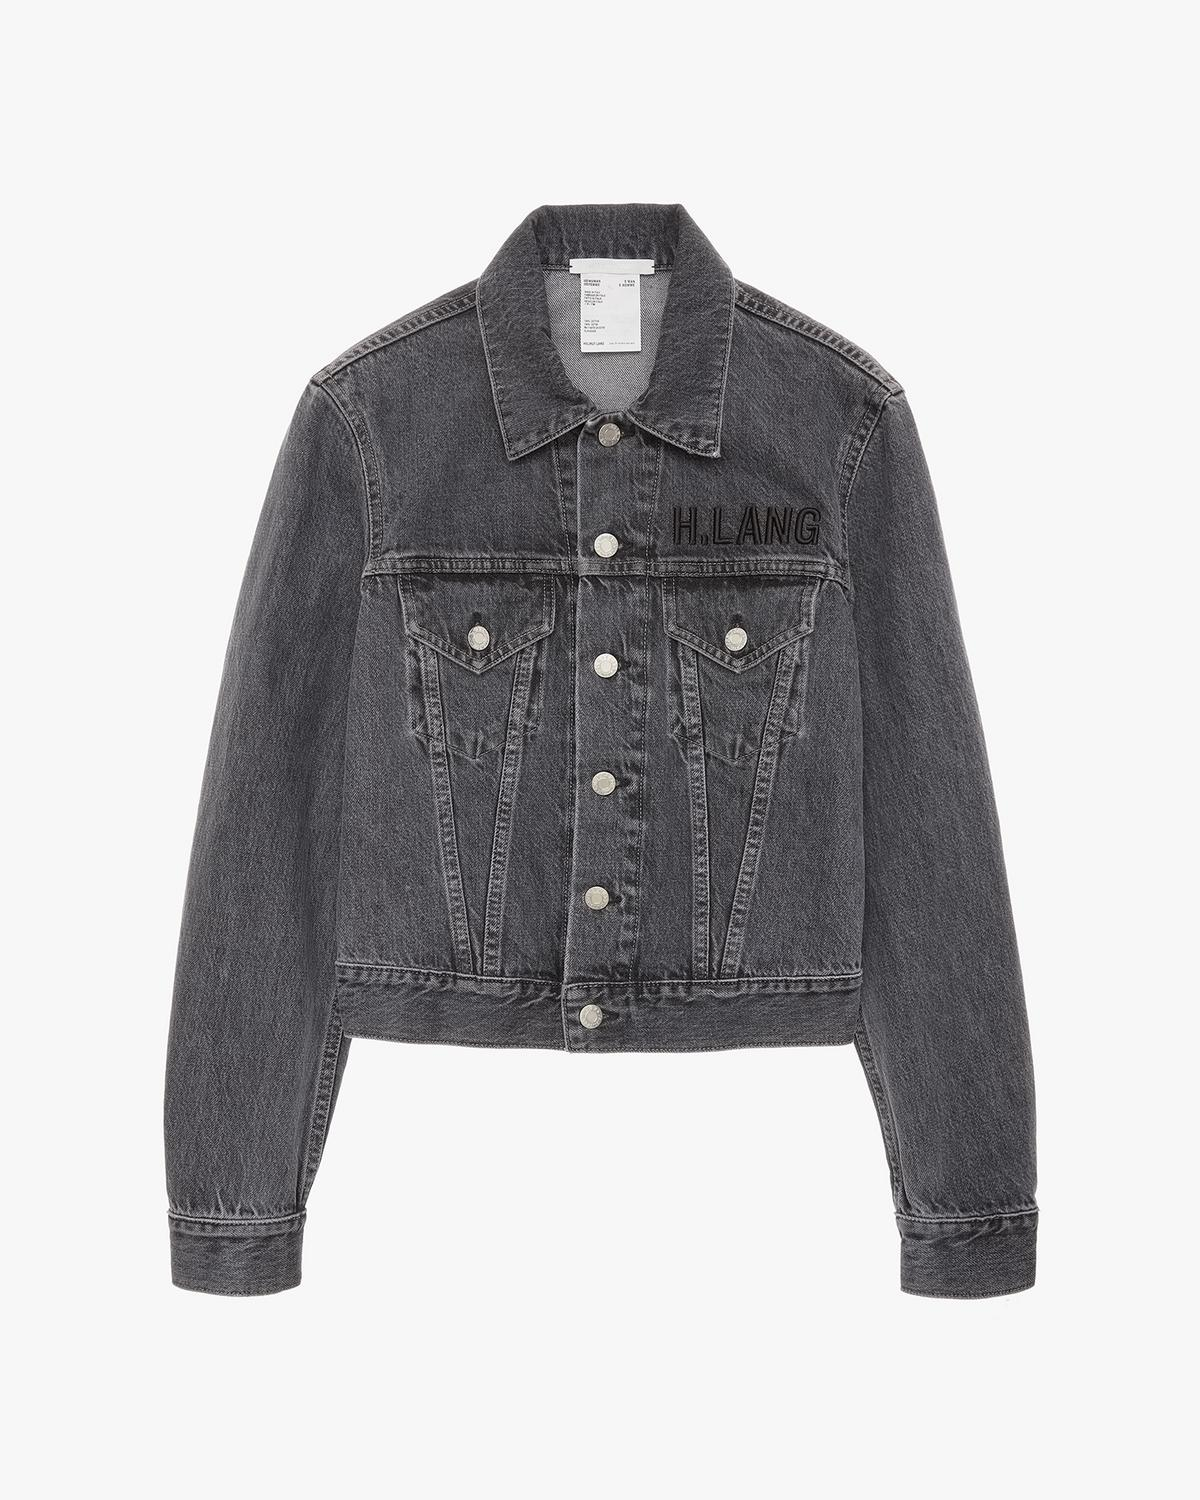 Masc Trucker Jean Jacket